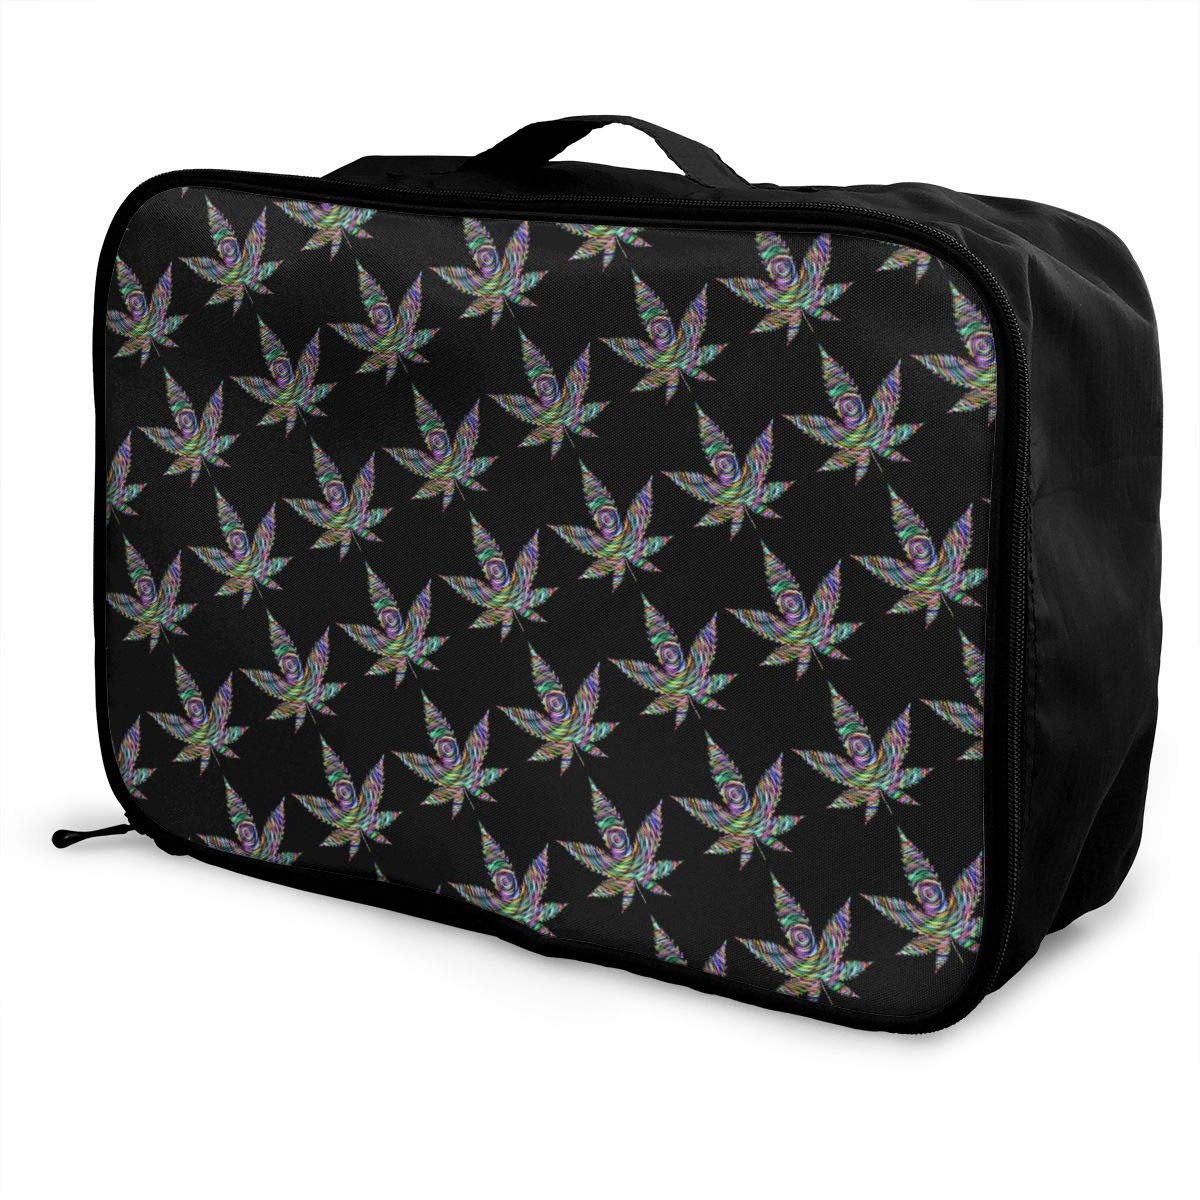 YueLJB Prismatic Marijuana Leaf Lightweight Large Capacity Portable Luggage Bag Travel Duffel Bag Storage Carry Luggage Duffle Tote Bag